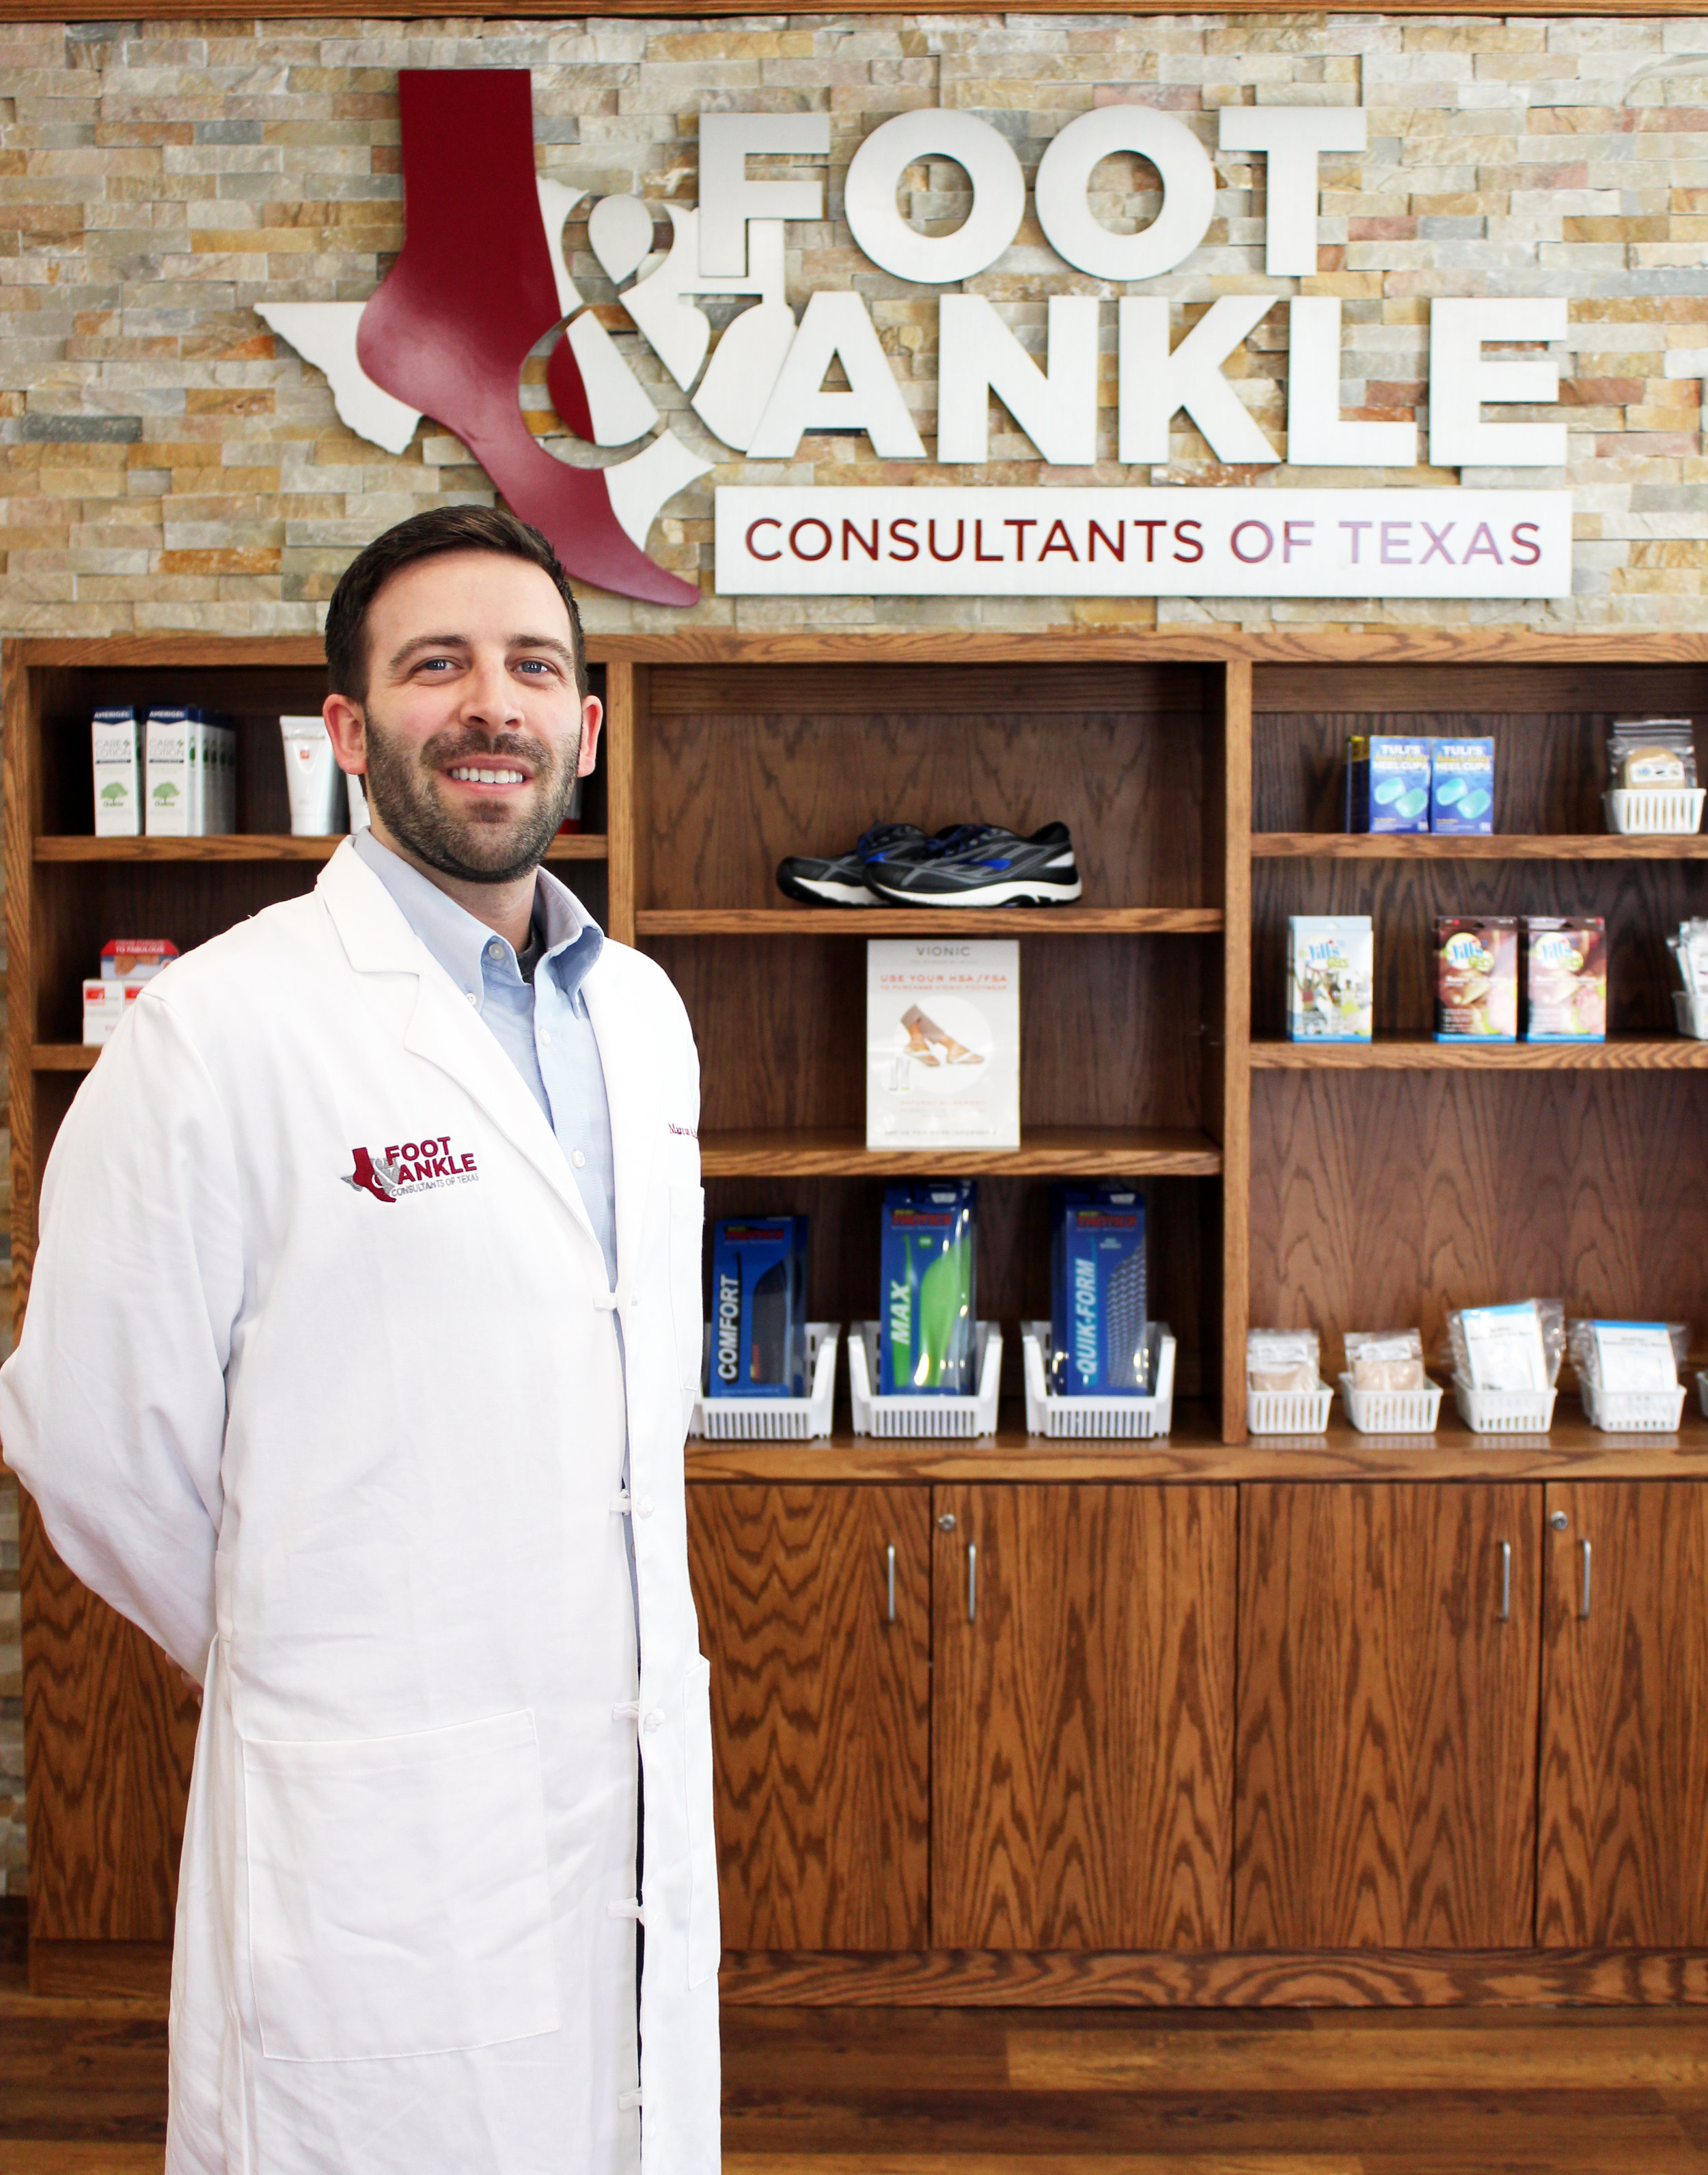 Dr. Baxter trained in podiatric medicine and surgery, with an emphasis on conservative care, wound care, reconstructive surgery, diabetic limb salvage and pediatric care.